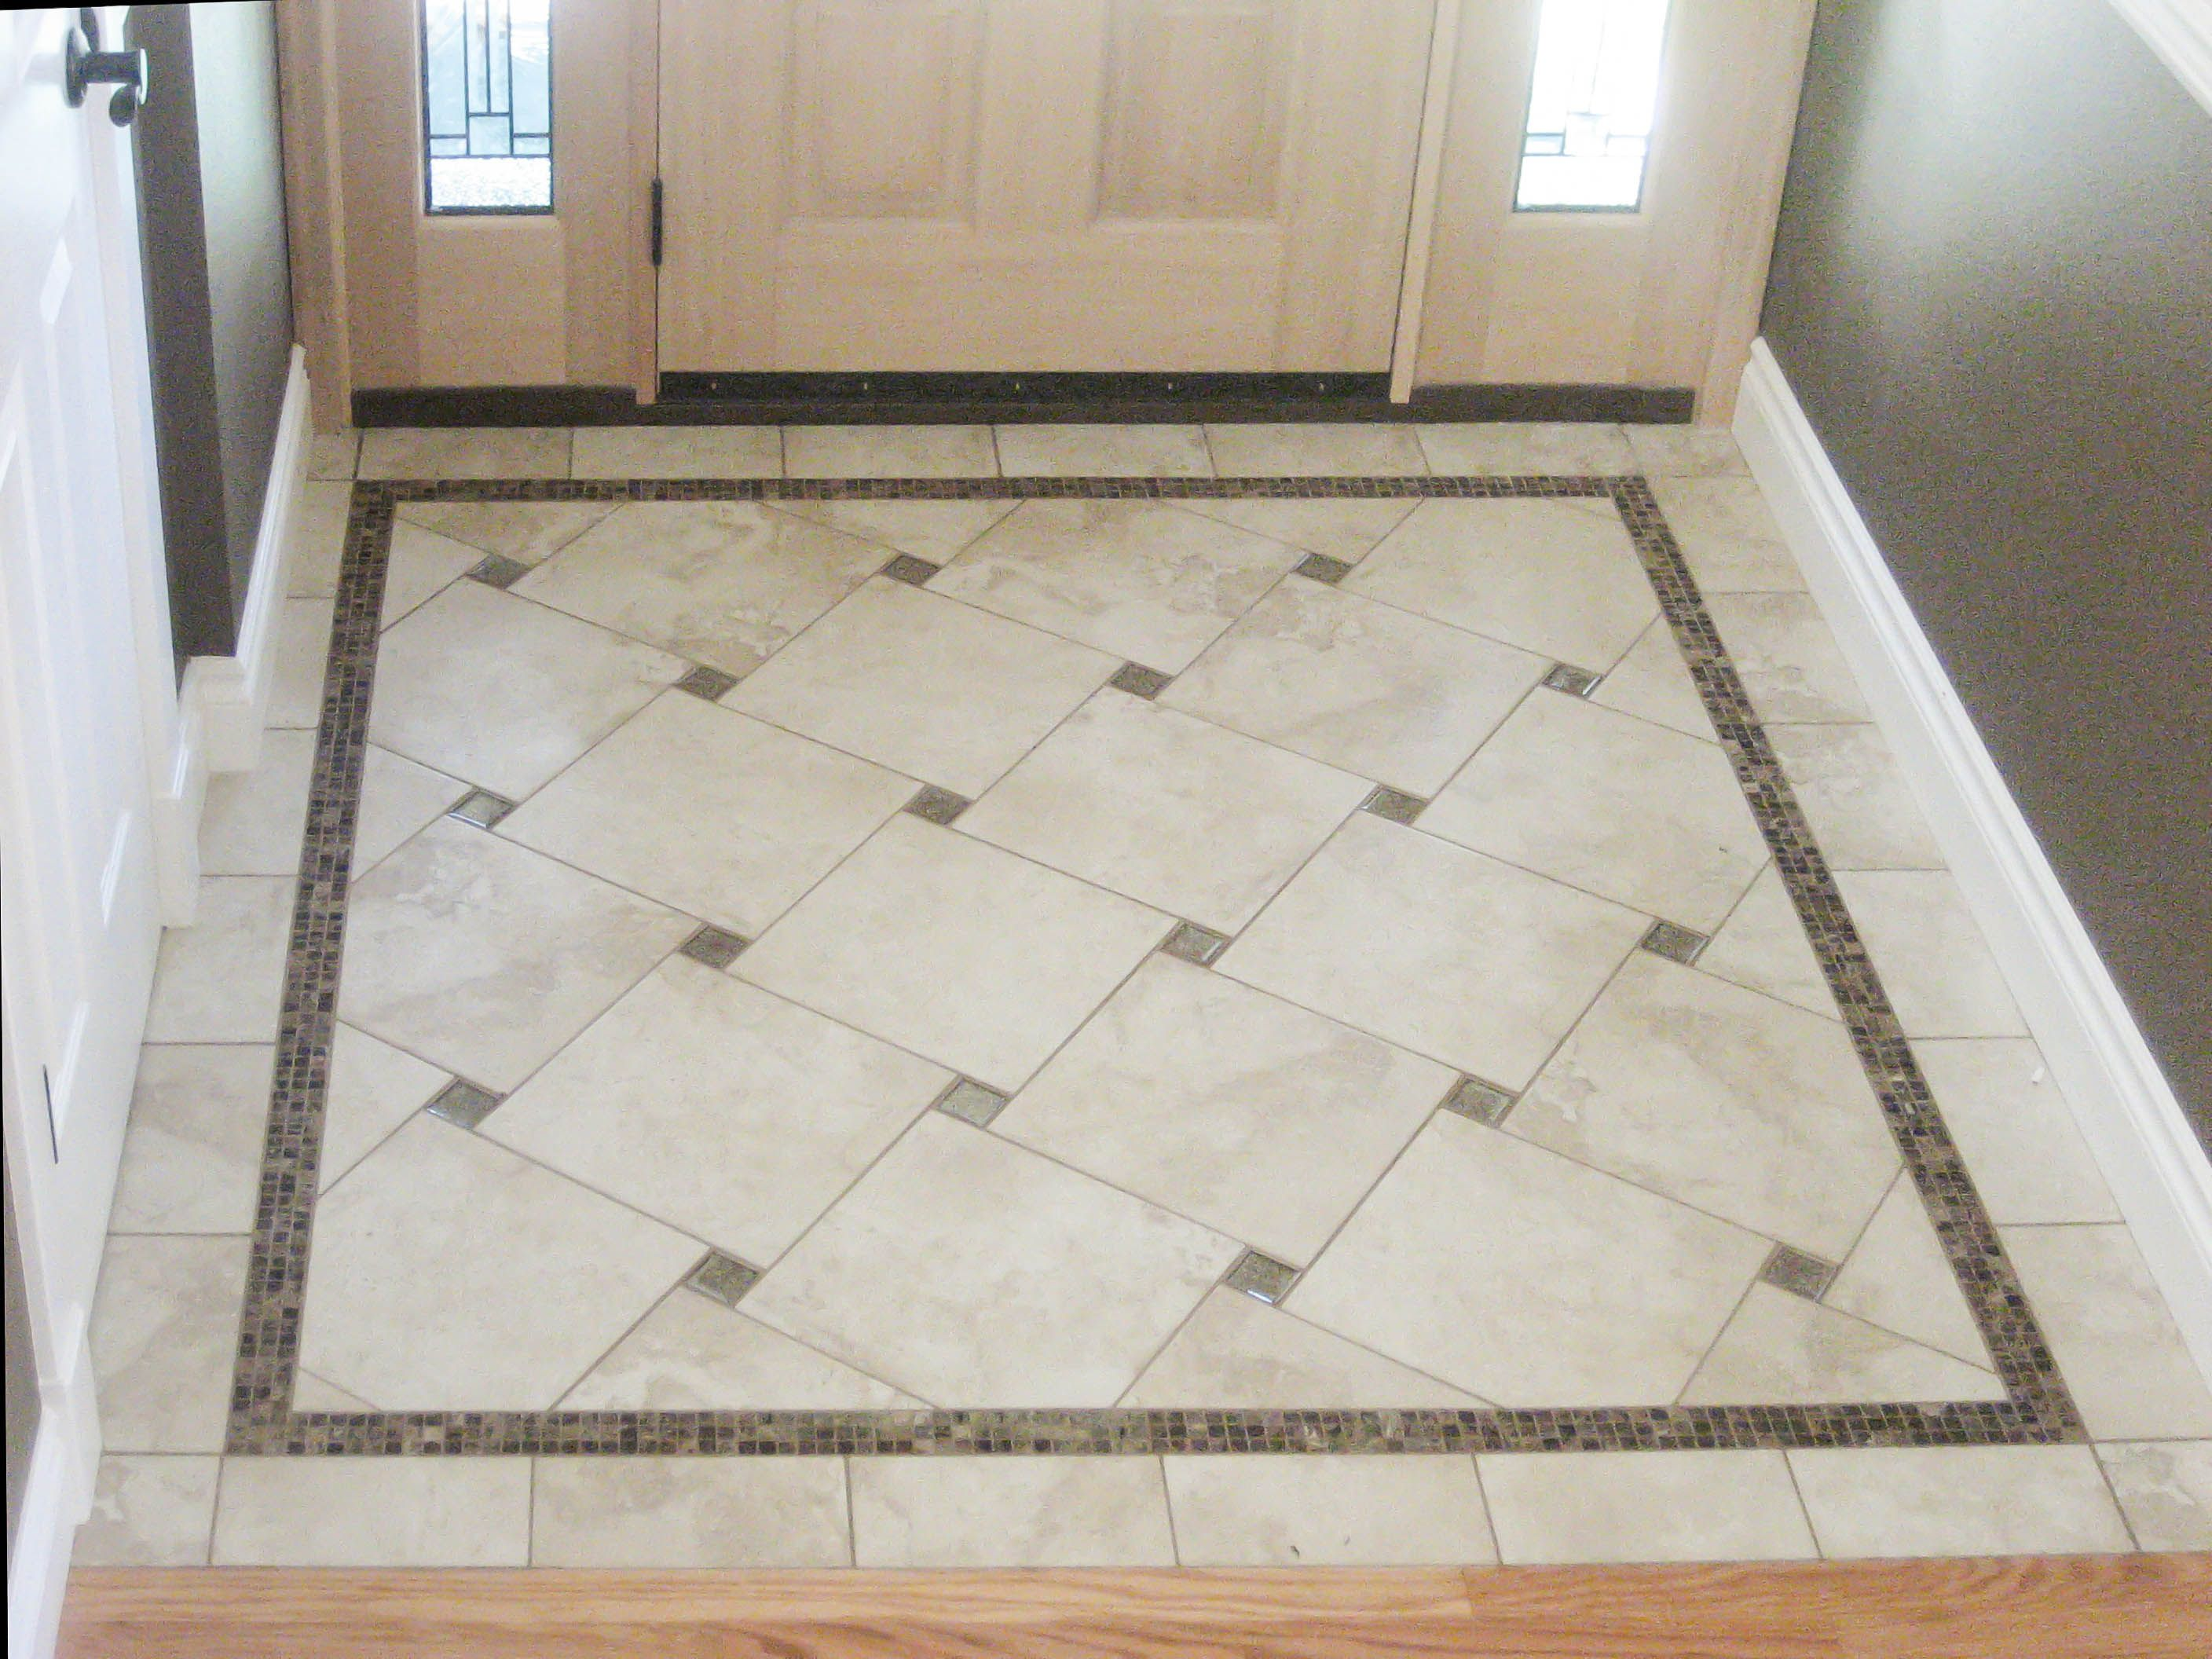 Floor Tile Installation Ceramic Floor Wall Ideas Tiles Porcelain Flooring Granite Tile Designs How To Install Installing Vinyl Floors Italian Idea Slate